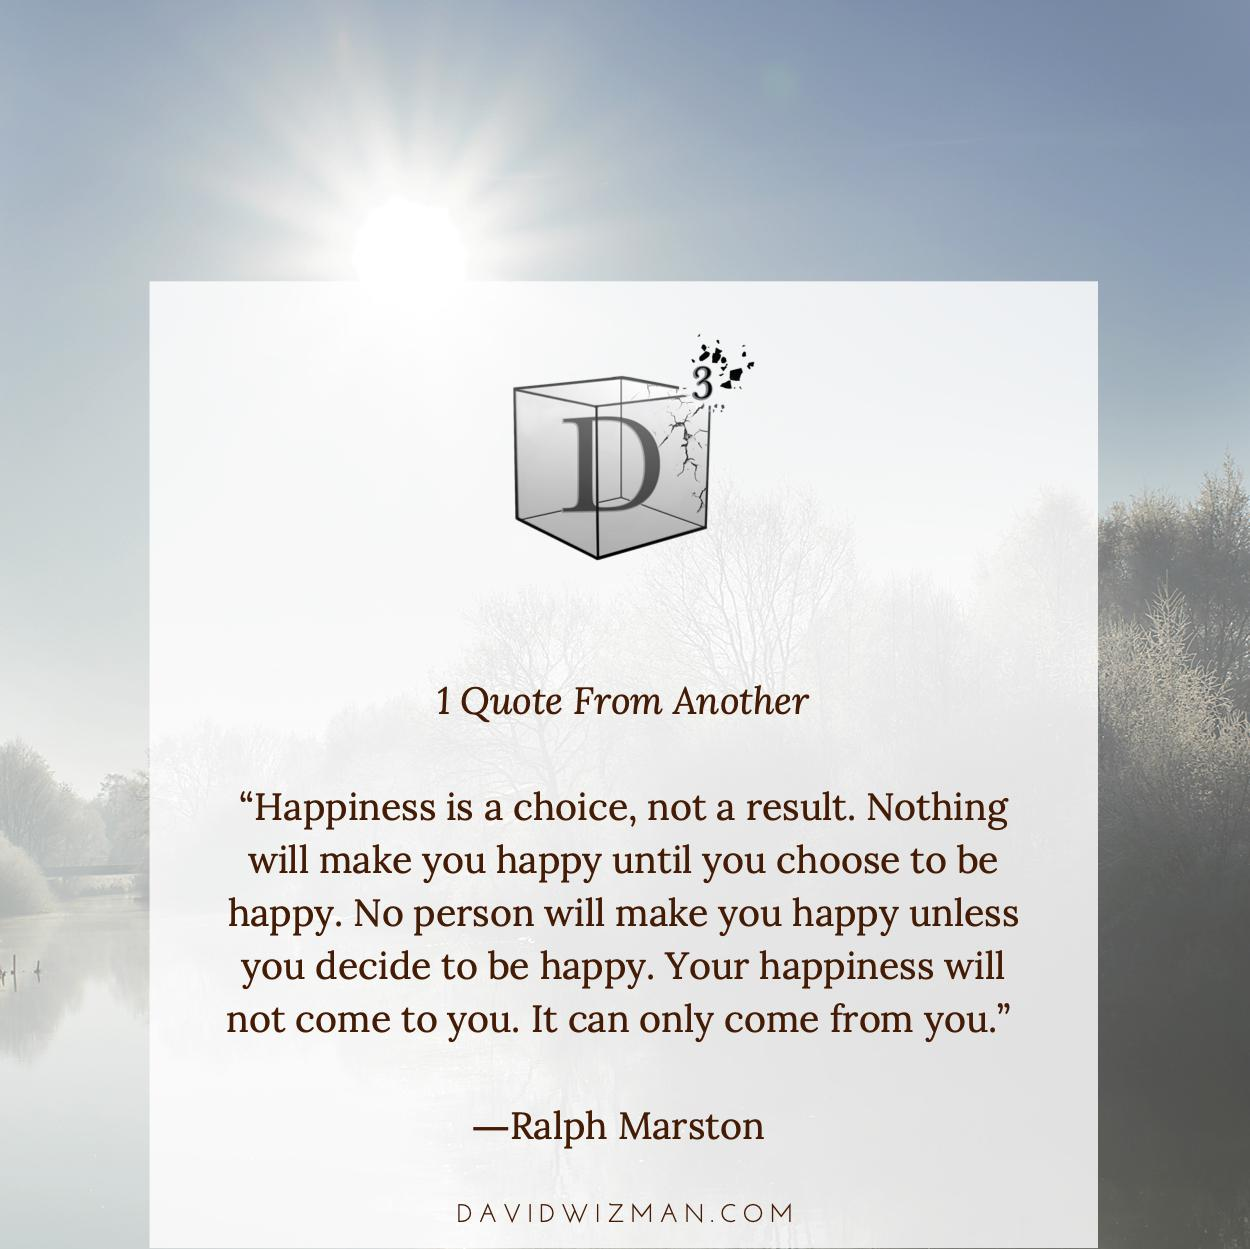 """1 Quote From Another """"Happiness is a choice, not a result. Nothing will make you happy until you choose to be happy. No person will make you happy unless you decide to be happy. Your happiness will not come to you. It can only come from you."""" —Ra1ph Marston DAVIDWIZMAN.COM https://inspirational.ly"""